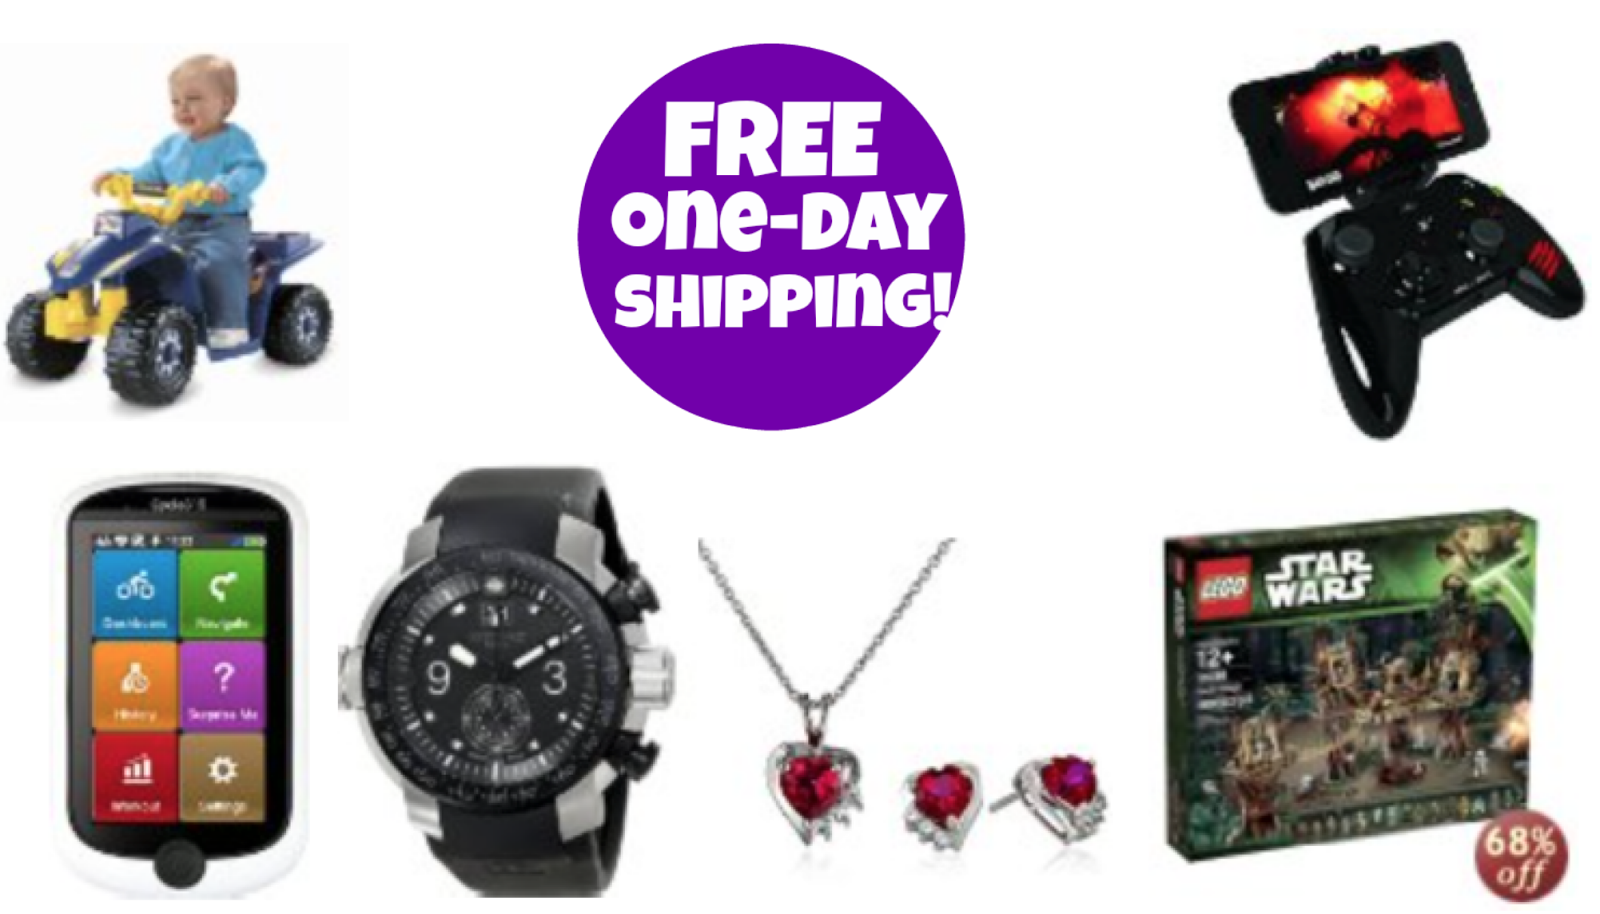 http://www.thebinderladies.com/2014/12/amazon-free-one-day-shipping-no-prime.html#.VJSvuAAIA